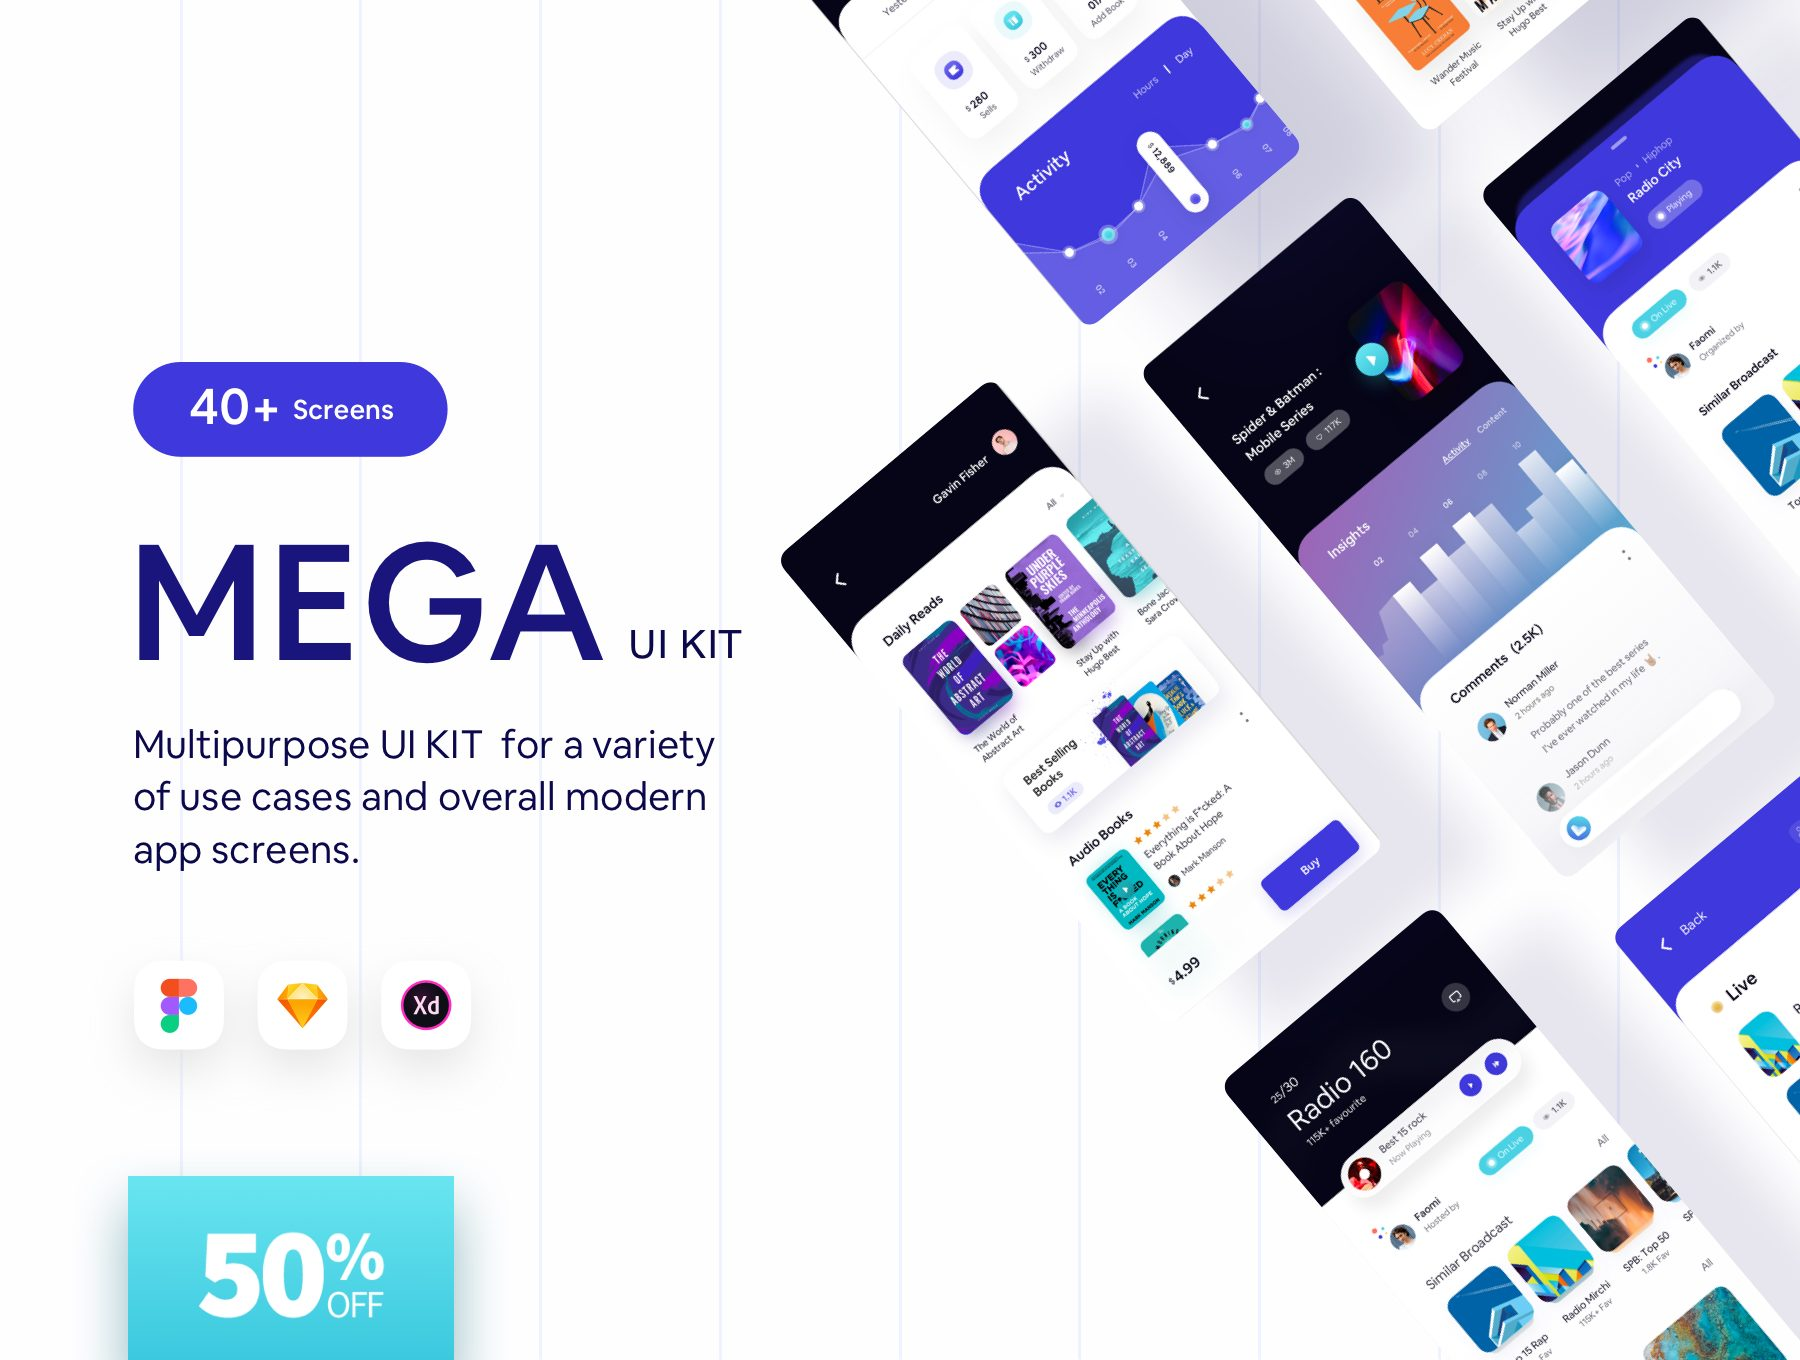 数字媒体音频阅读 APP UI KIT app设计iOS套装下载[fig,XD,Sketch] Mega iOS App UI Help Kit